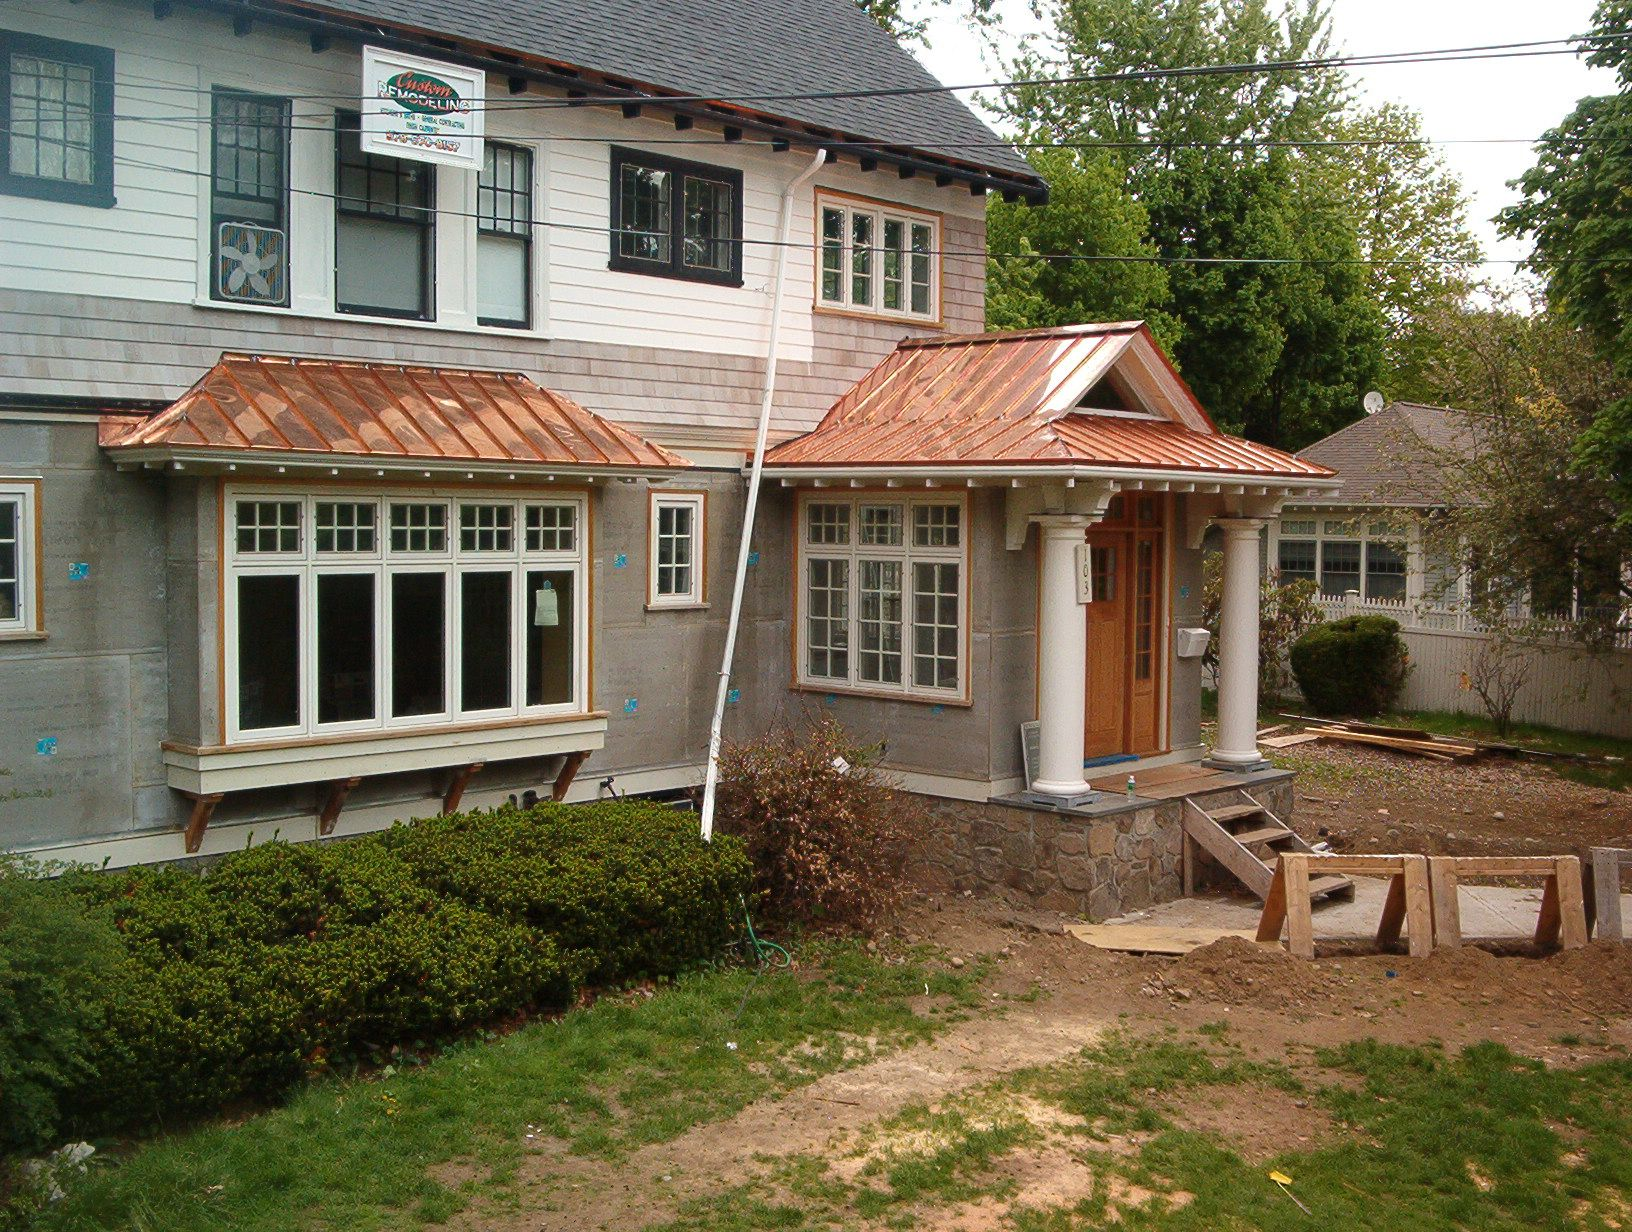 Top 70 Metal Roofing Facts Faqs Pros And Cons Consumer Guide 2014 2015 Copper Roof Copper Metal Roof Copper Roof House